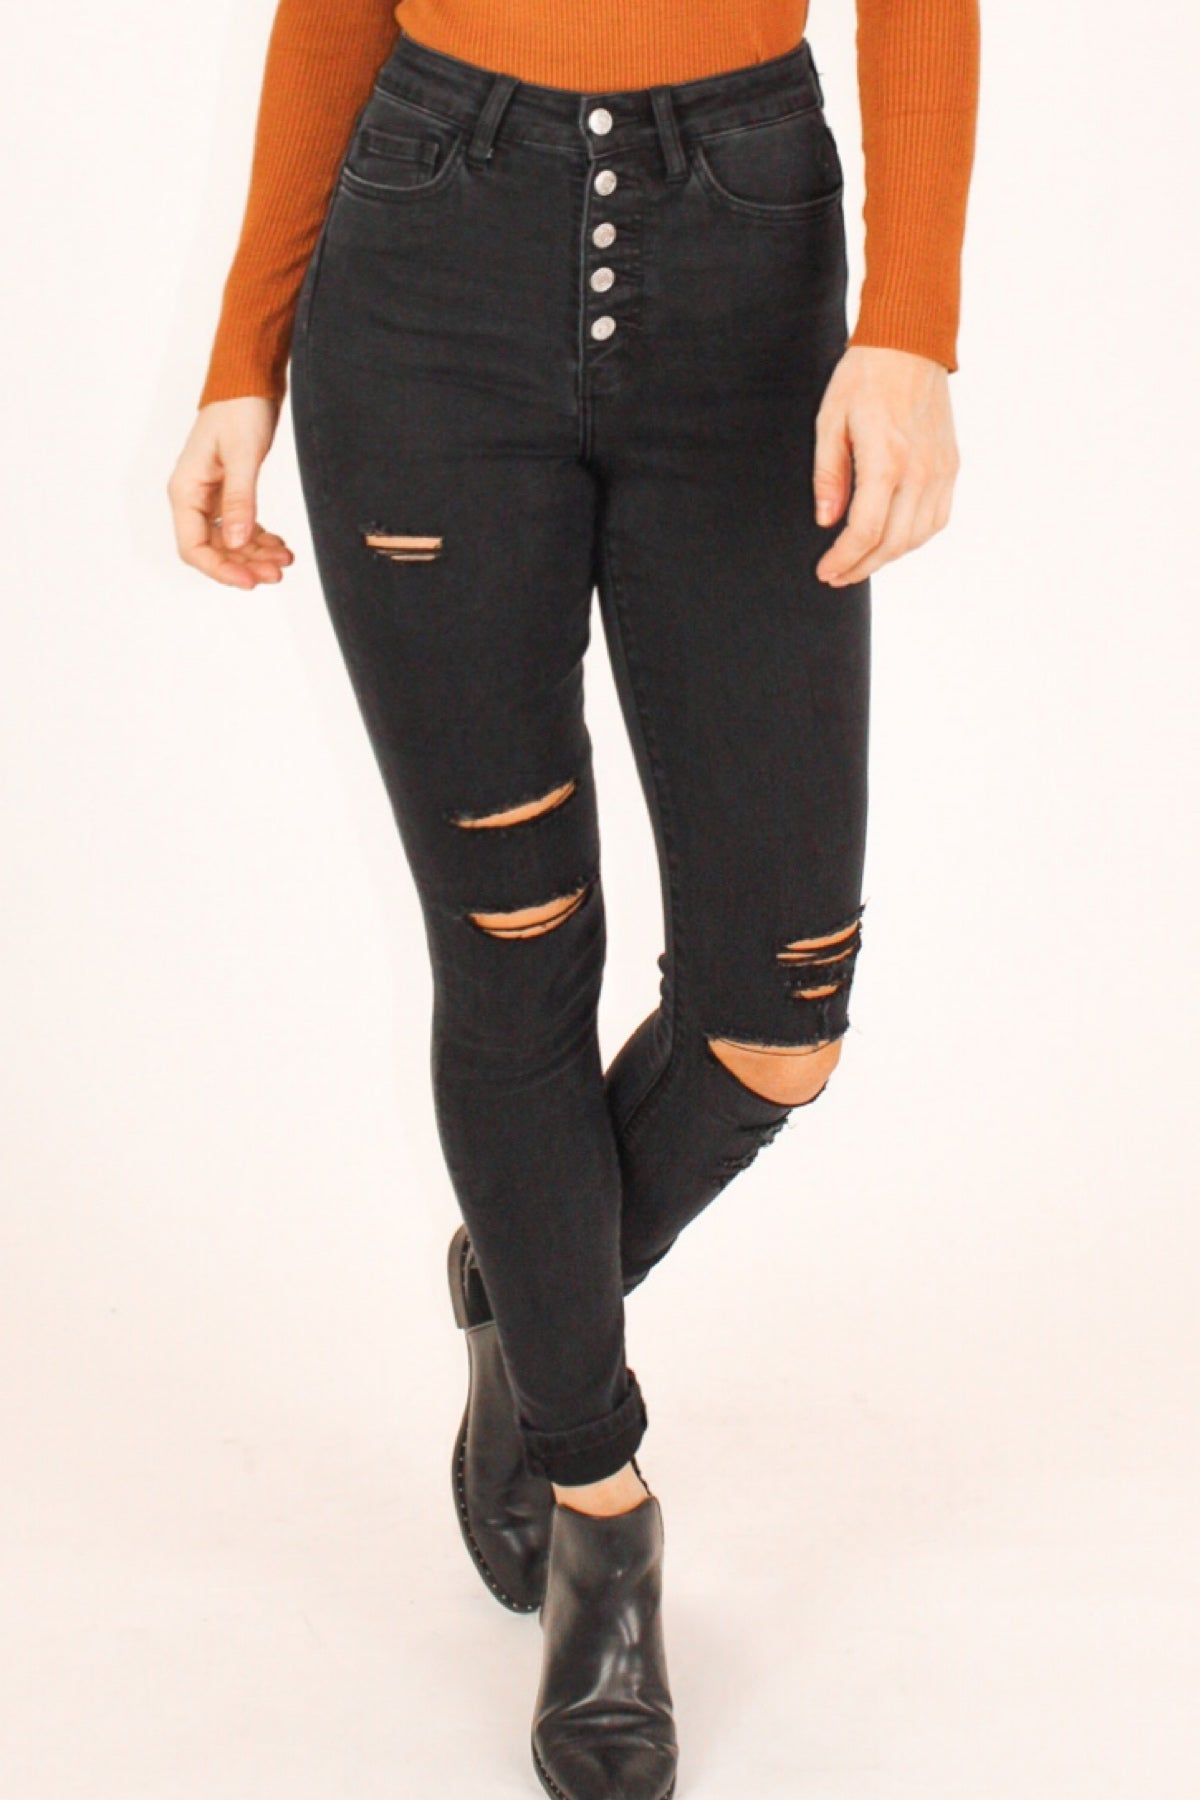 BLACK BUTTON UP DISTRESSED SKINNY JEAN